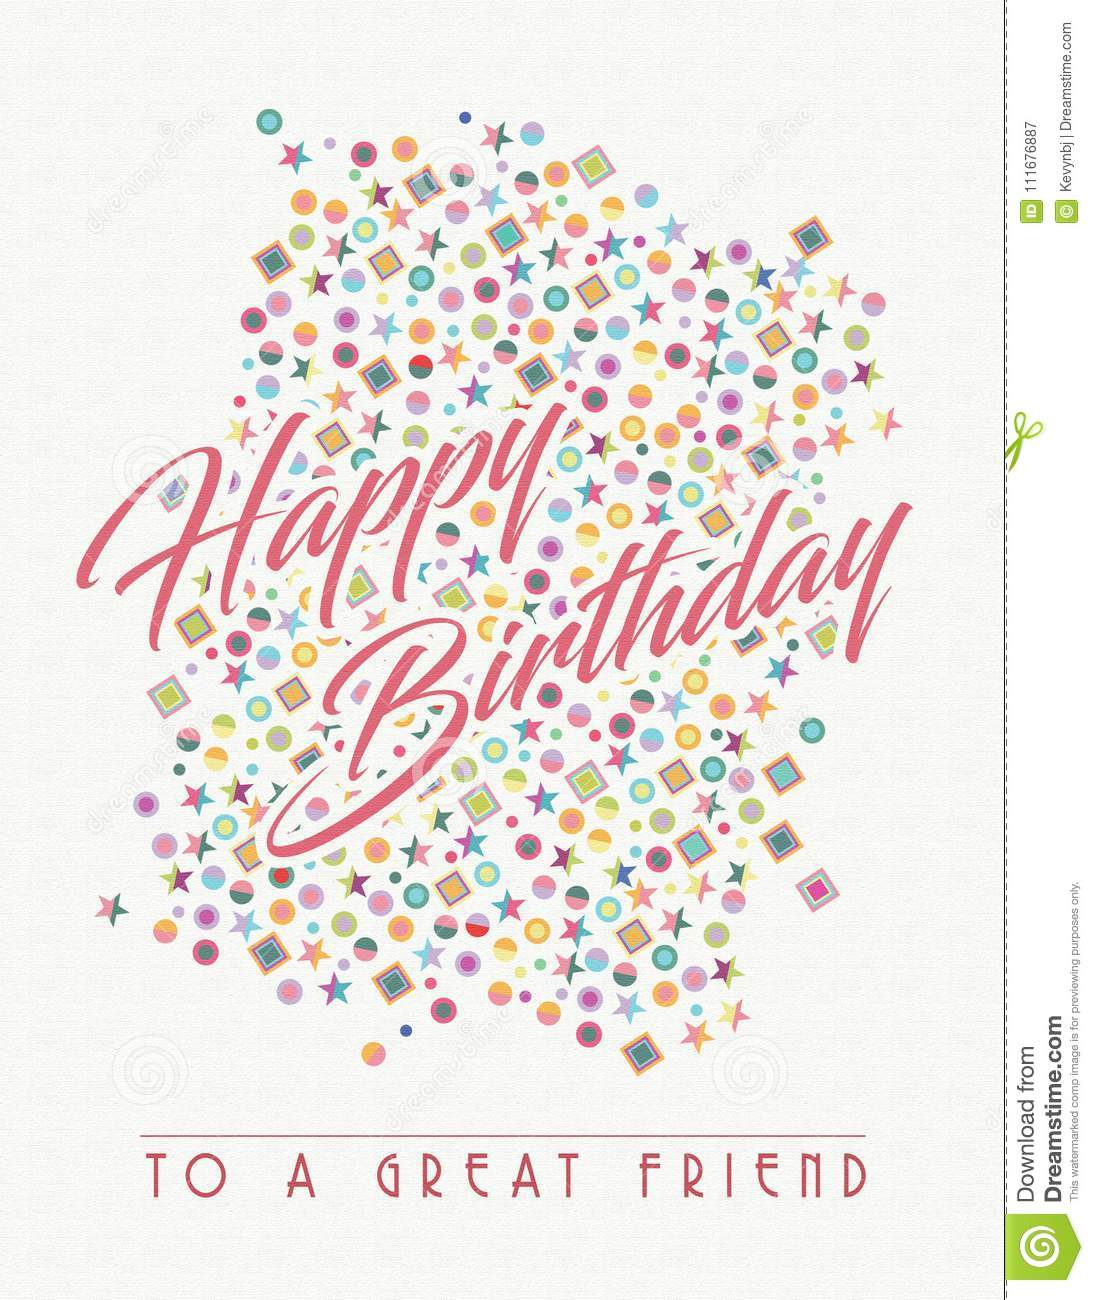 Birthday Card Art For Friend Happy Greeting Vector Colors Pastels Paper Fun Great Friendship Birth Day